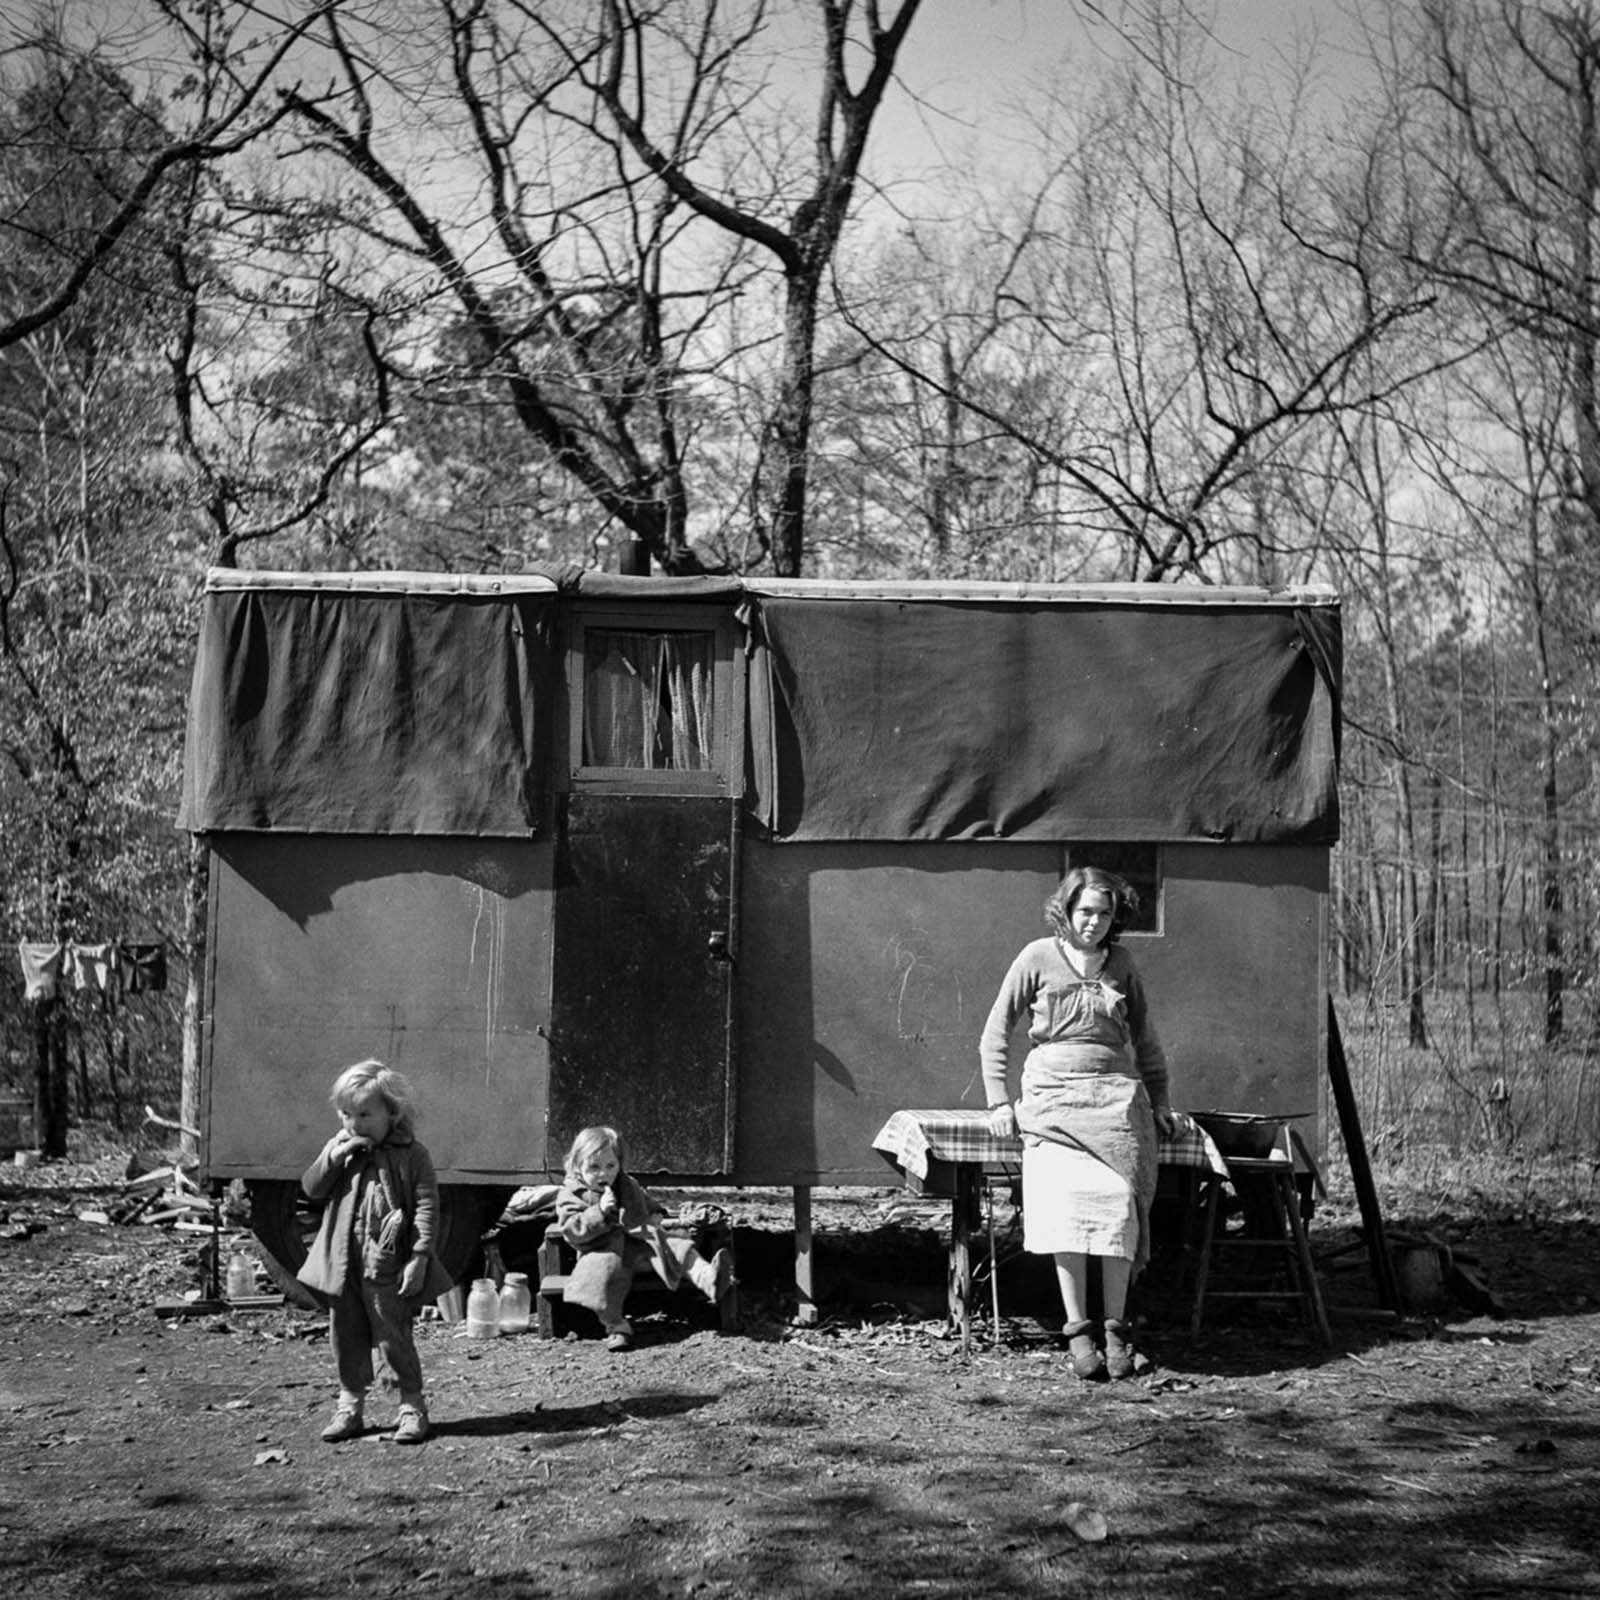 A migrant encampment in Birmingham, Alabama. 1937.